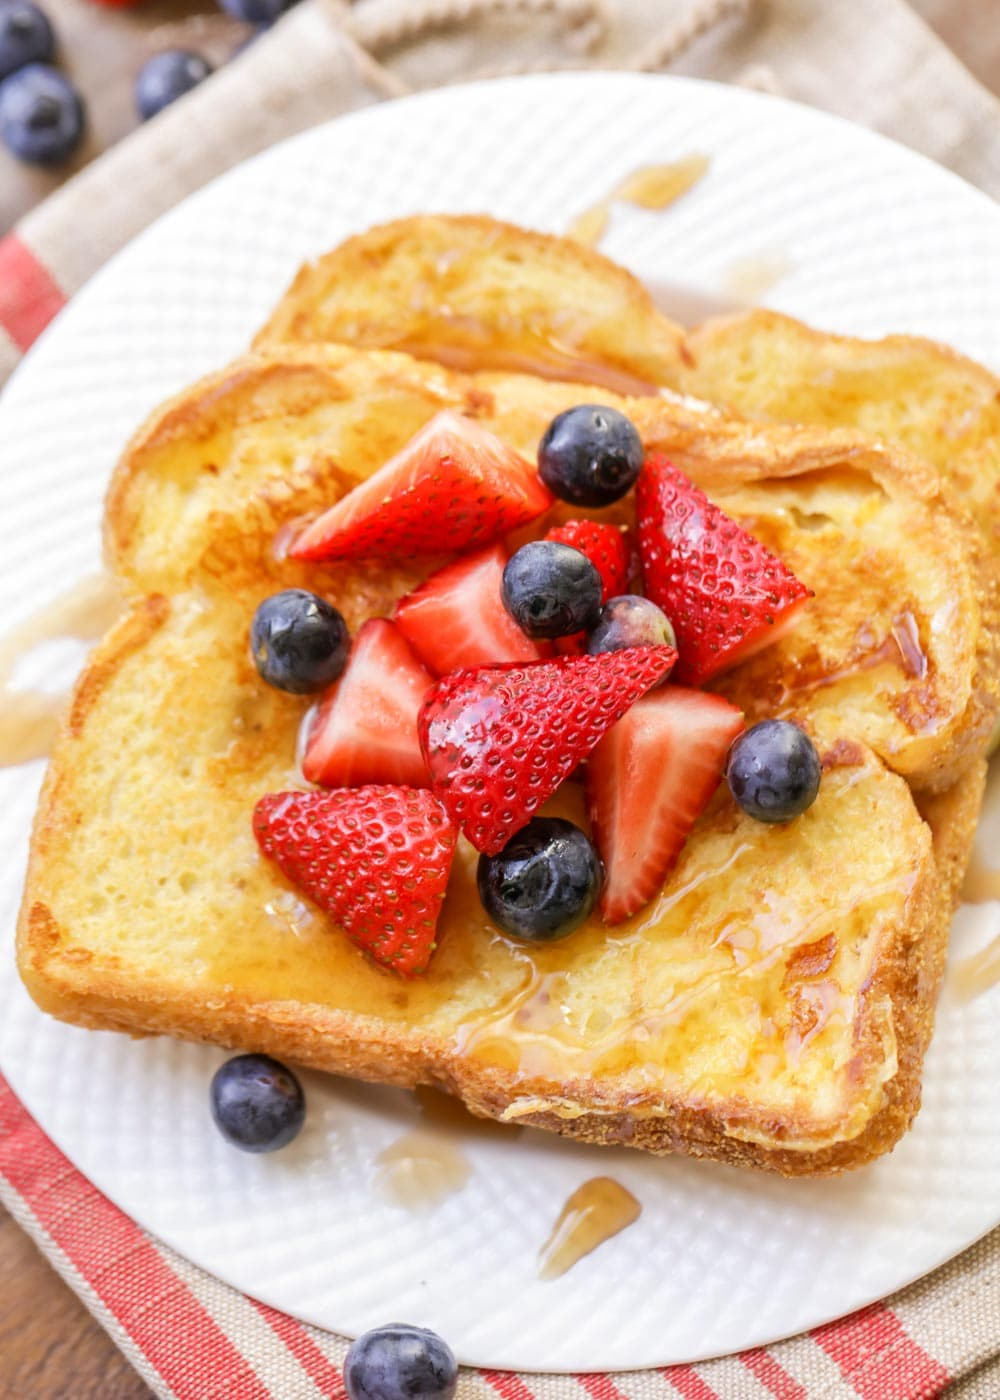 Eggnog french toast topped with berries on a white plate